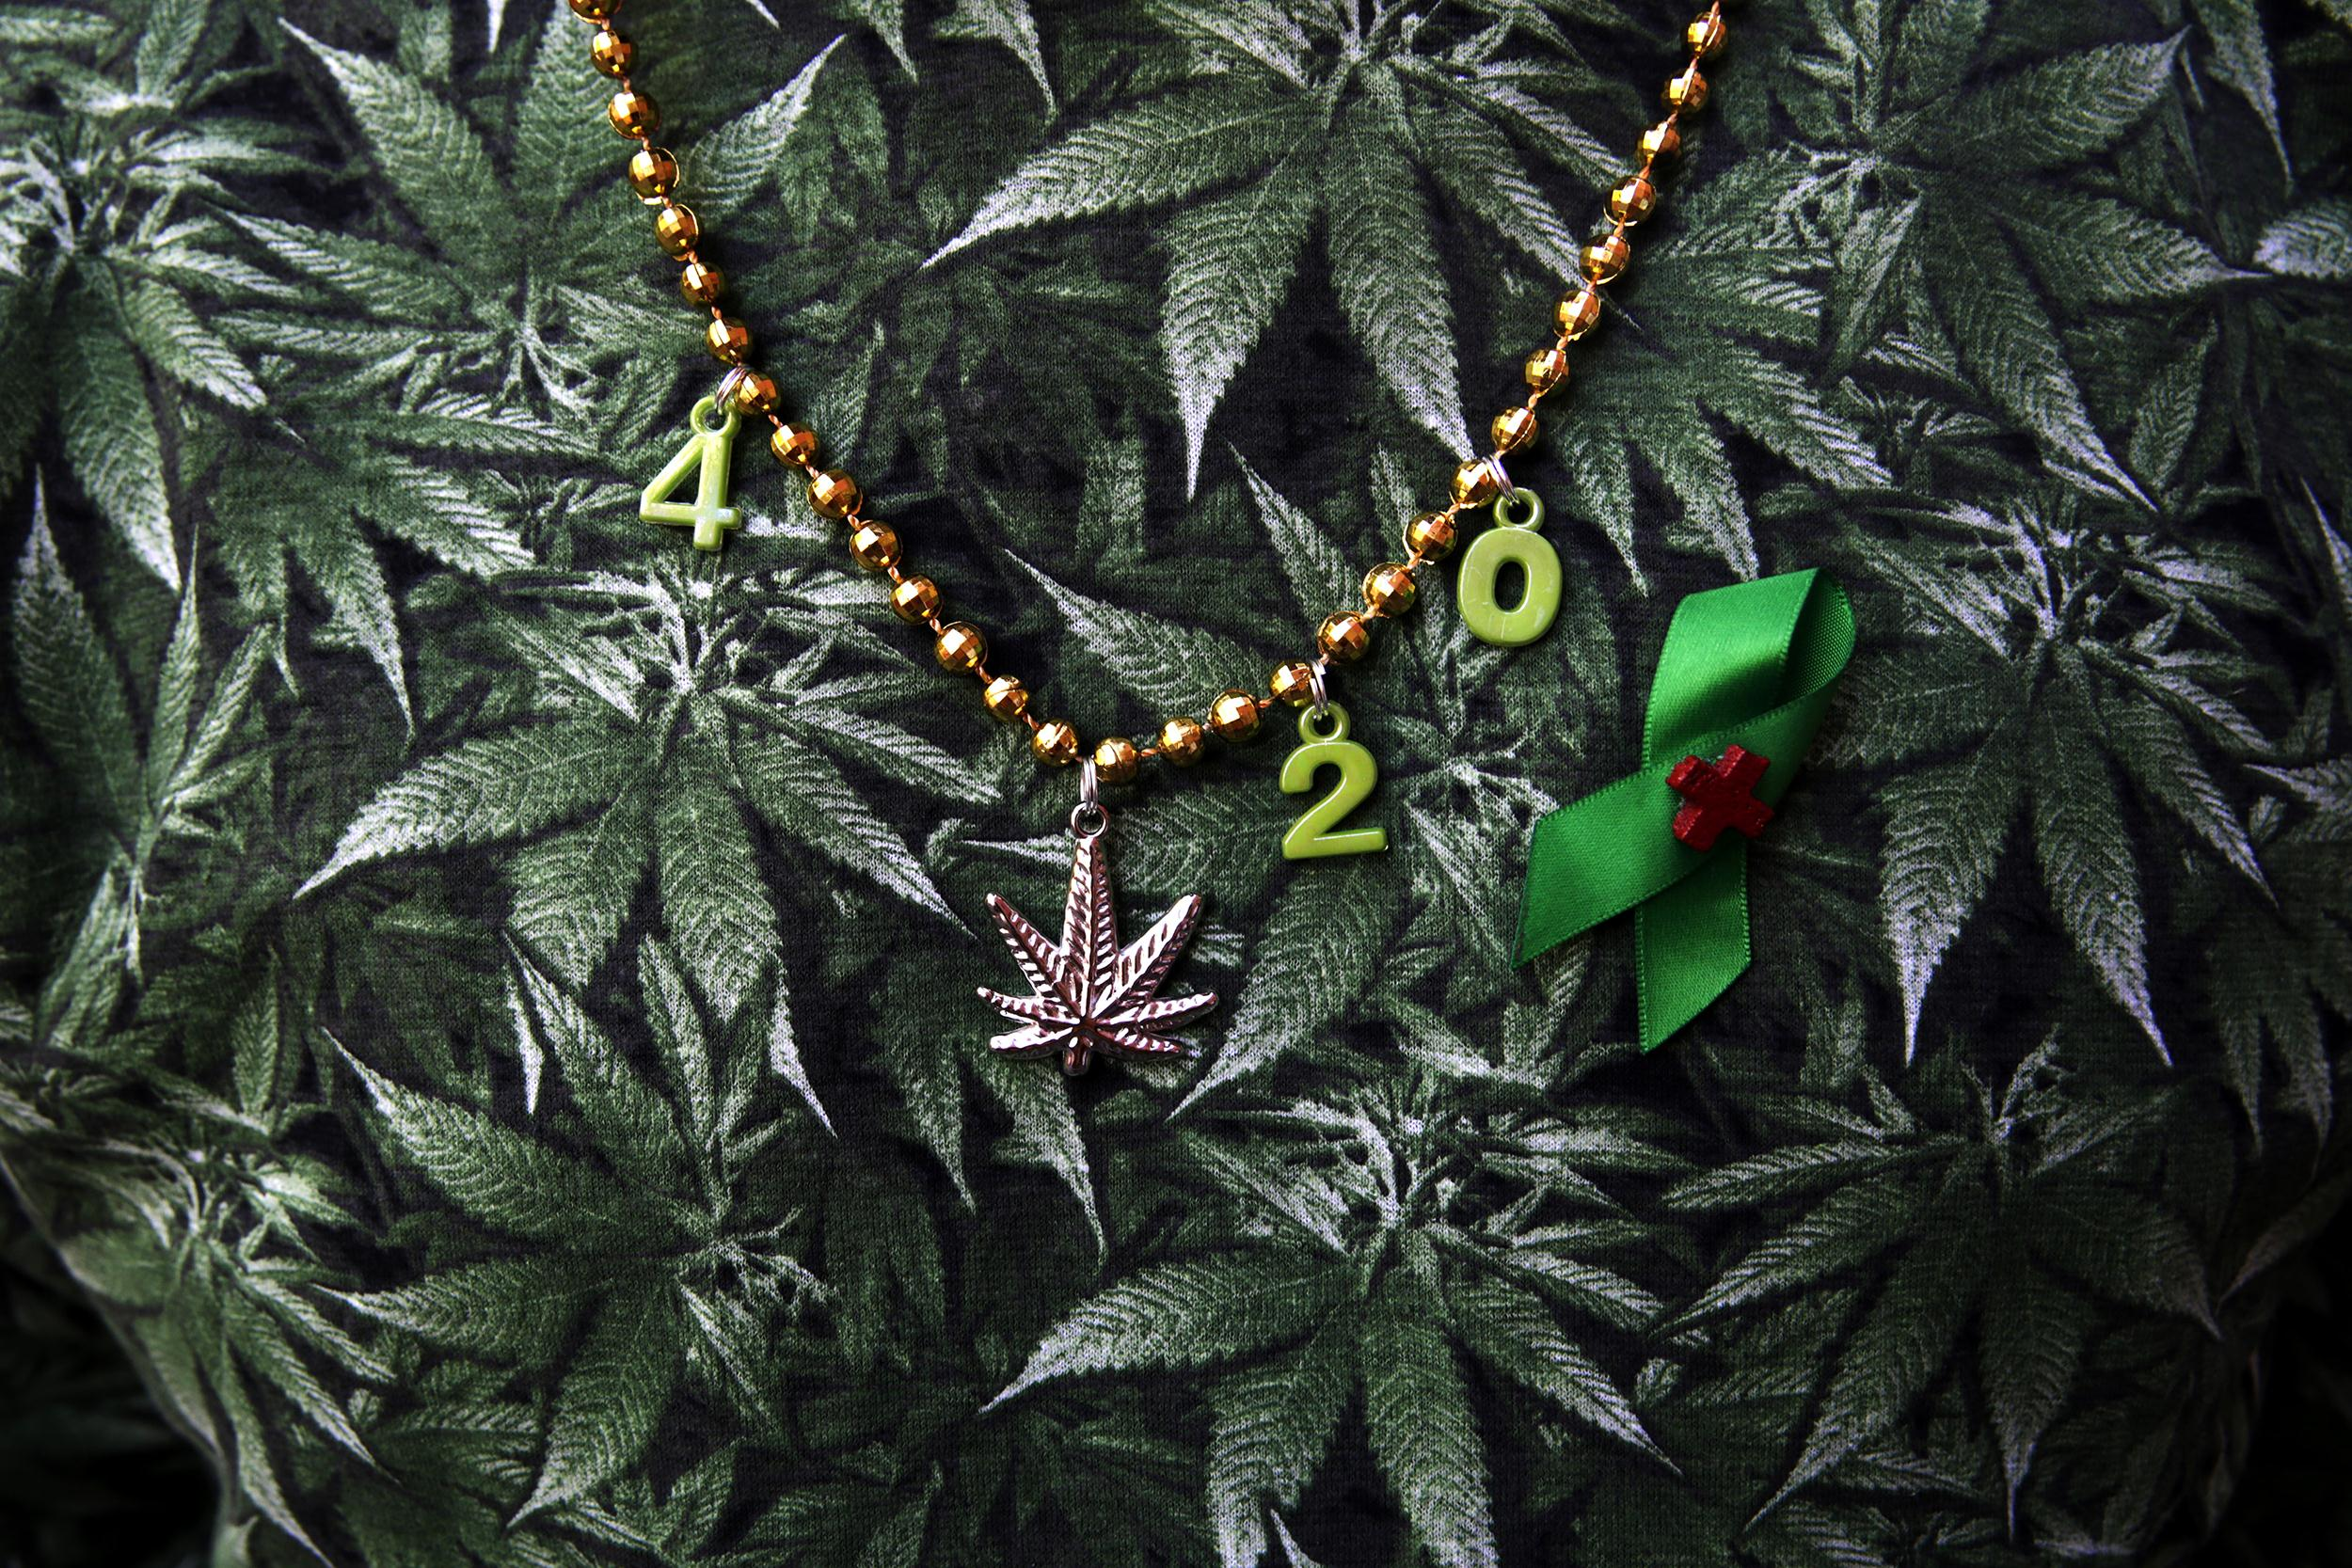 Unofficial Counterculture Marijuana Holiday Celebrated